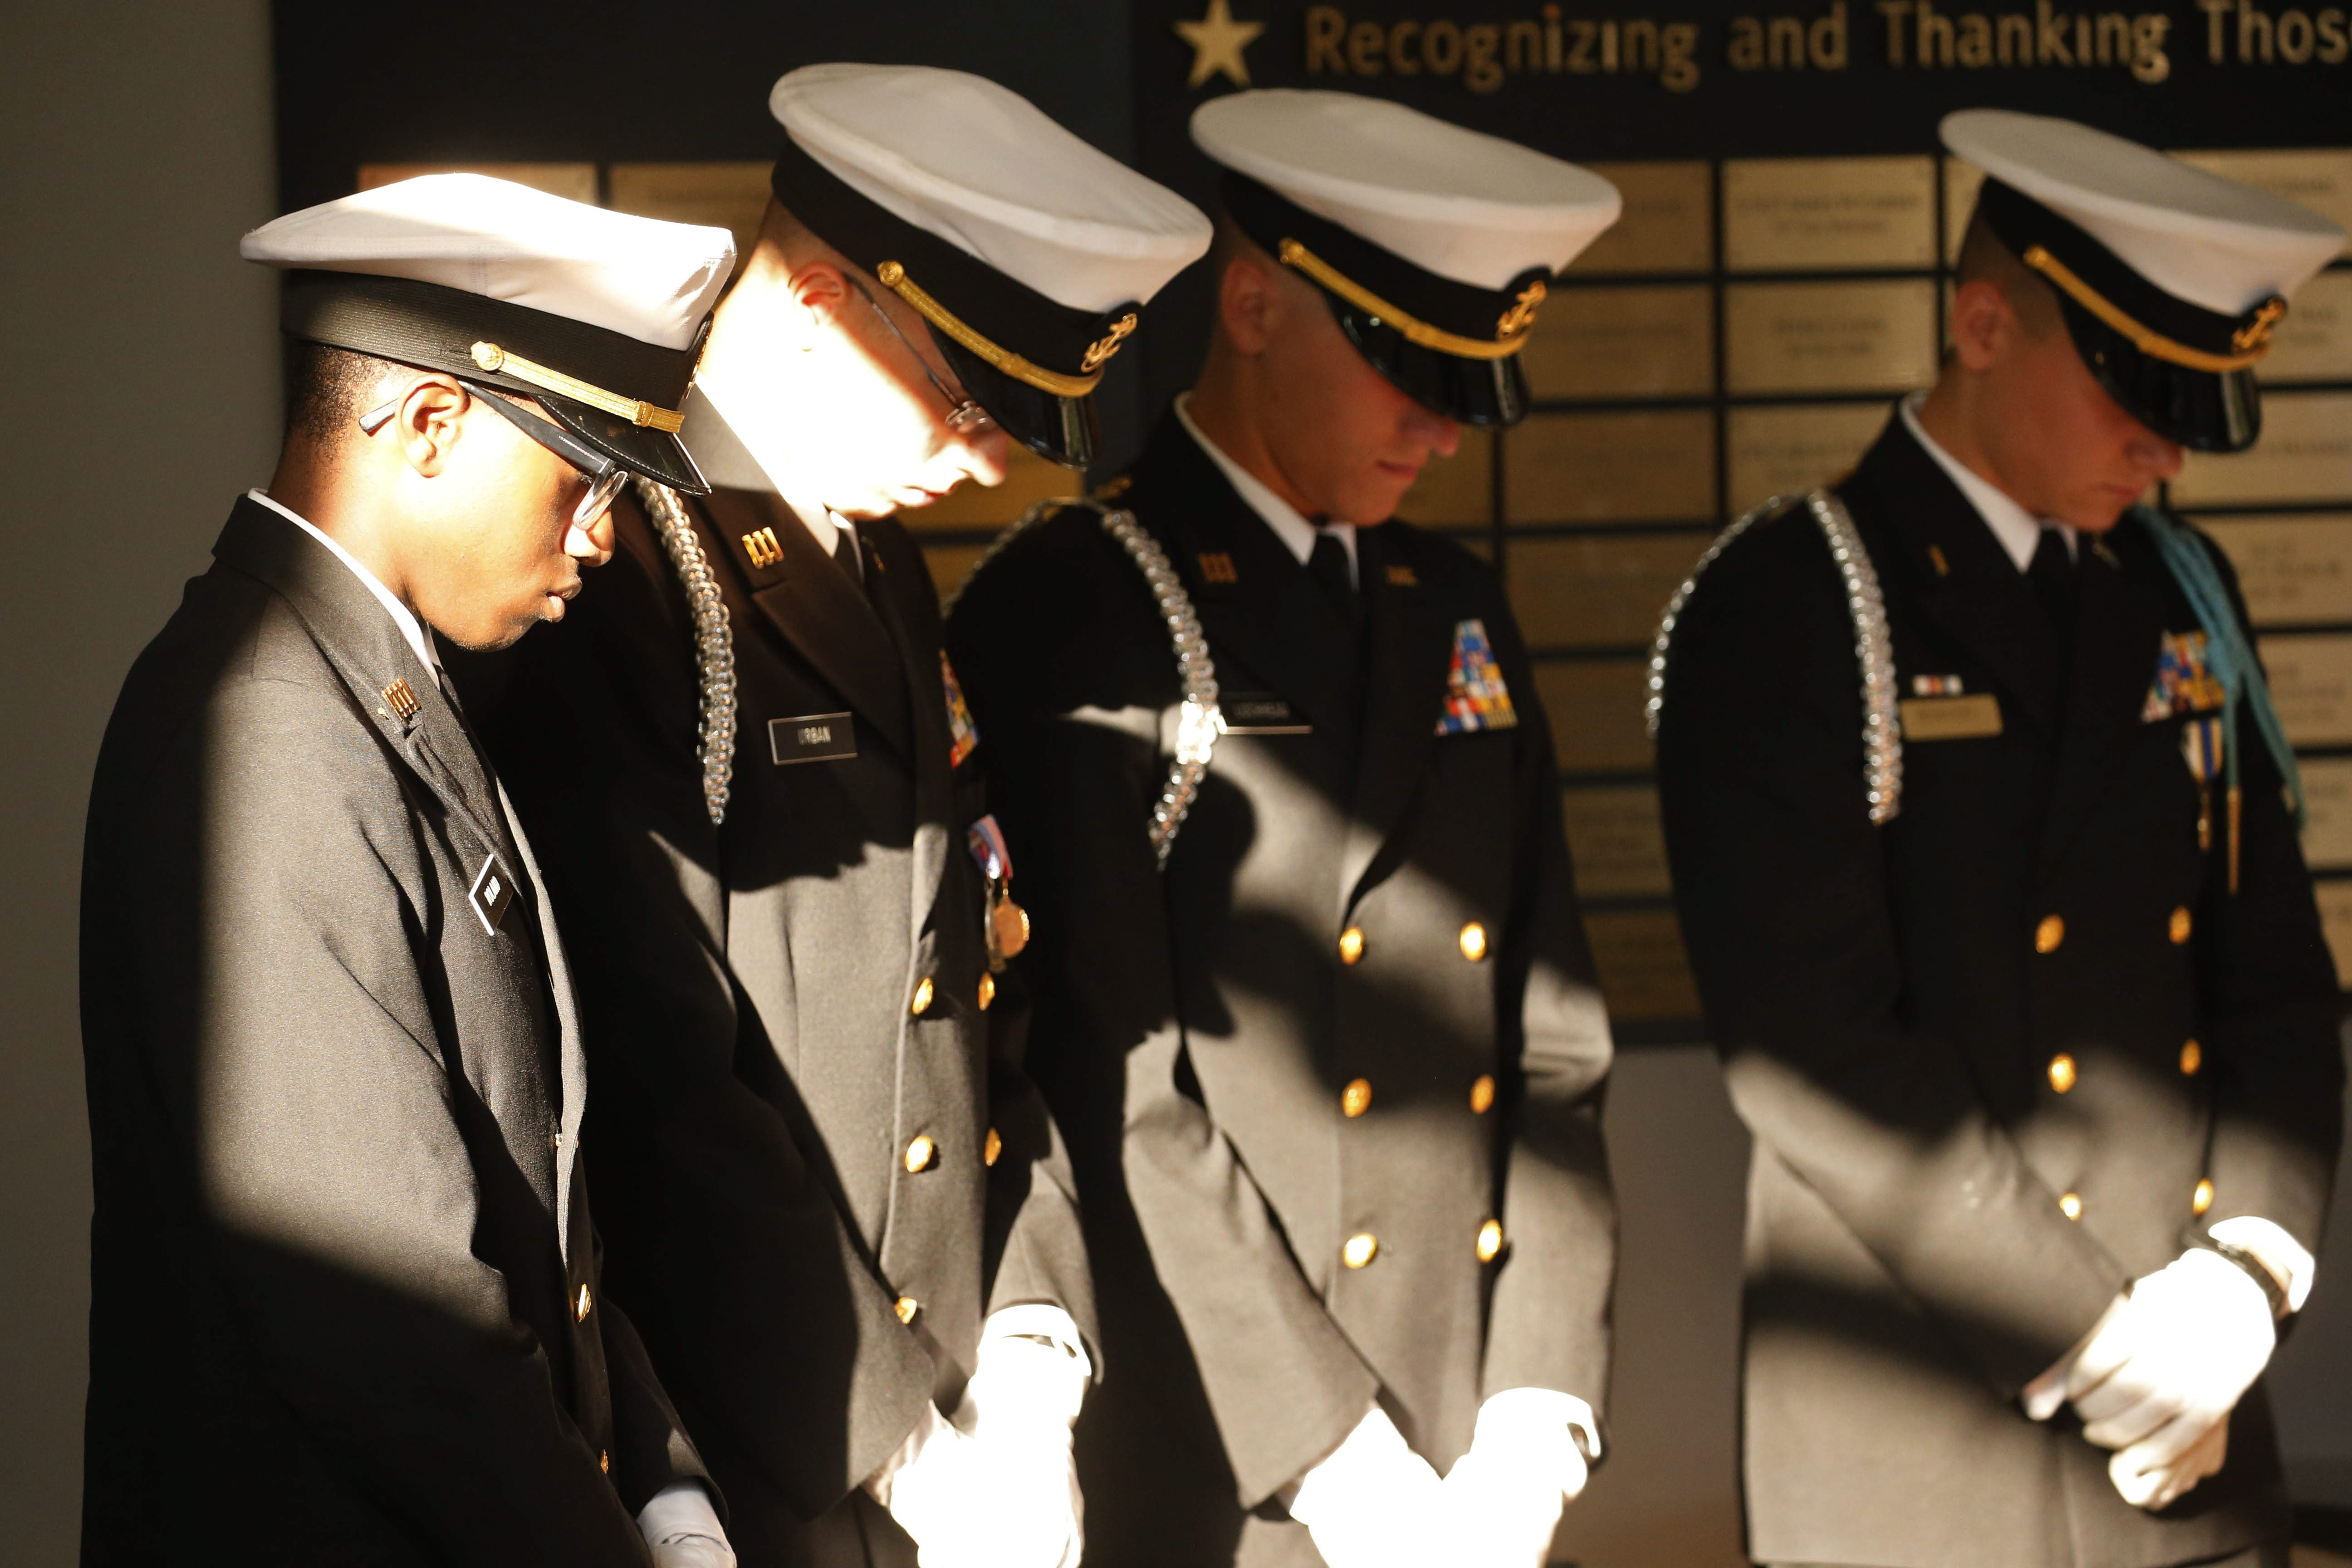 Cadets from the Maritime Charter School Honor Guard bow their heads during a 9/11 remembrance ceremony at the Buffalo and Erie County Naval and Military Park, Friday, Sept. 11, 2015.  From left are Melvin Roland, Douglas Urban, Connor Lochhead and Claudio Benavides.  (Derek Gee/Buffalo News)